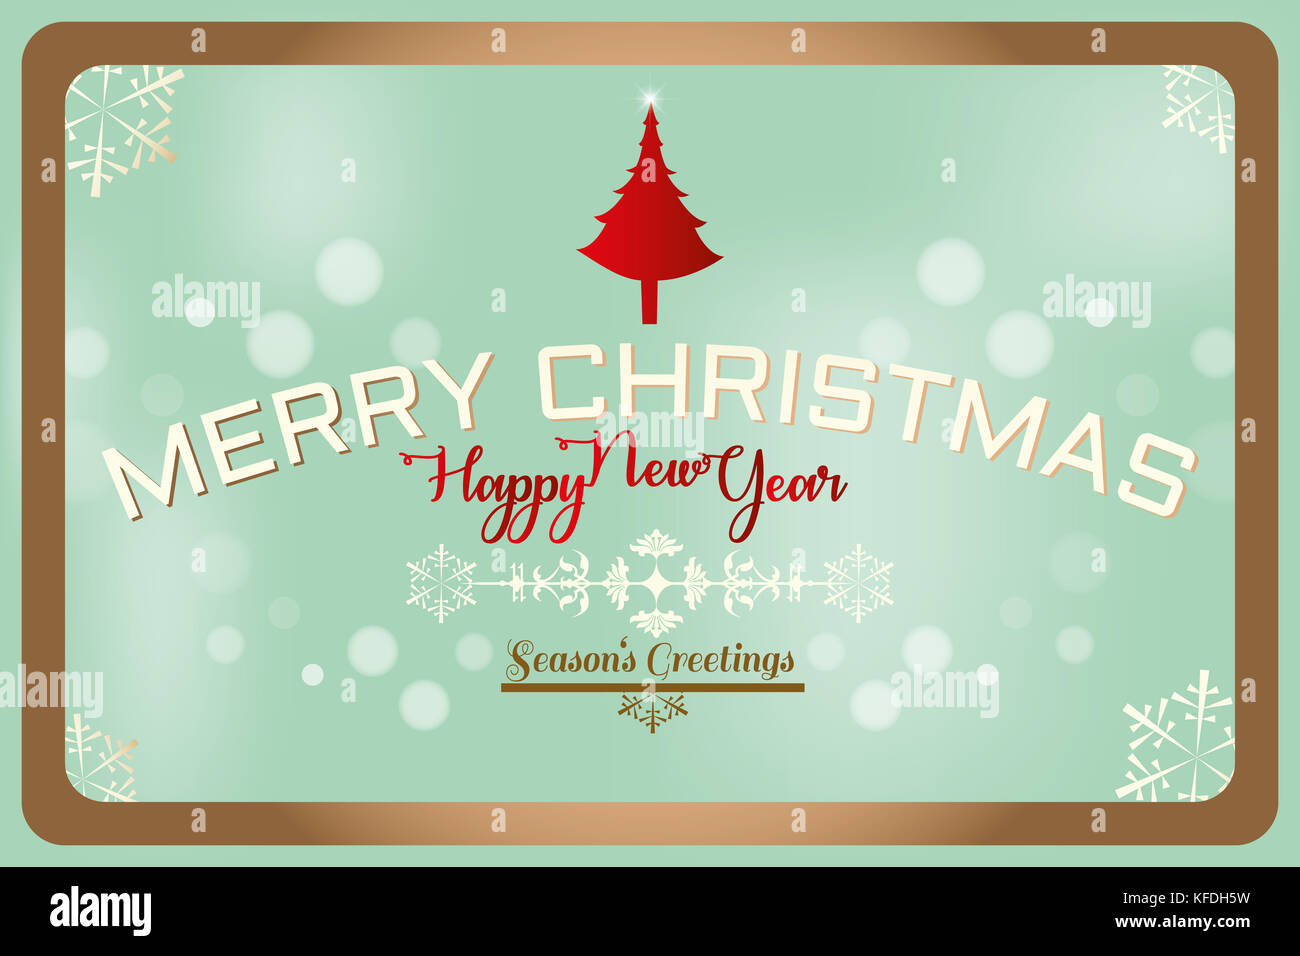 merry christmas seasons greetings and happy new year text label on a winter background with snowflakes tree and design elemnts greeting card templ